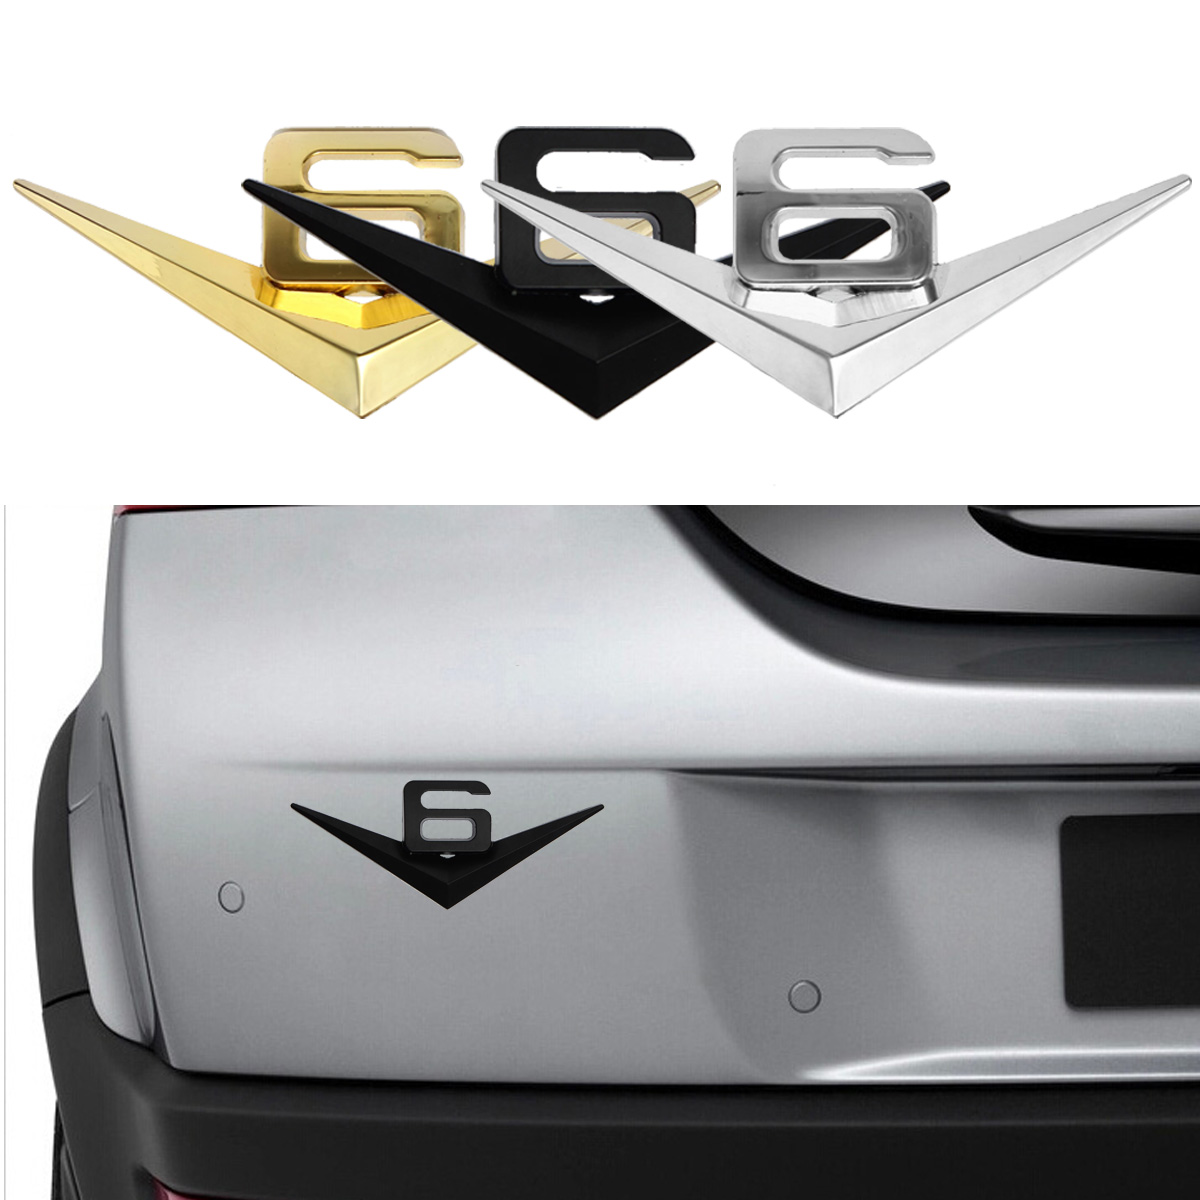 3D Car Metal V6 Emblem Decal Emblem Badge Truck Auto Motor Sticker 3 Colors